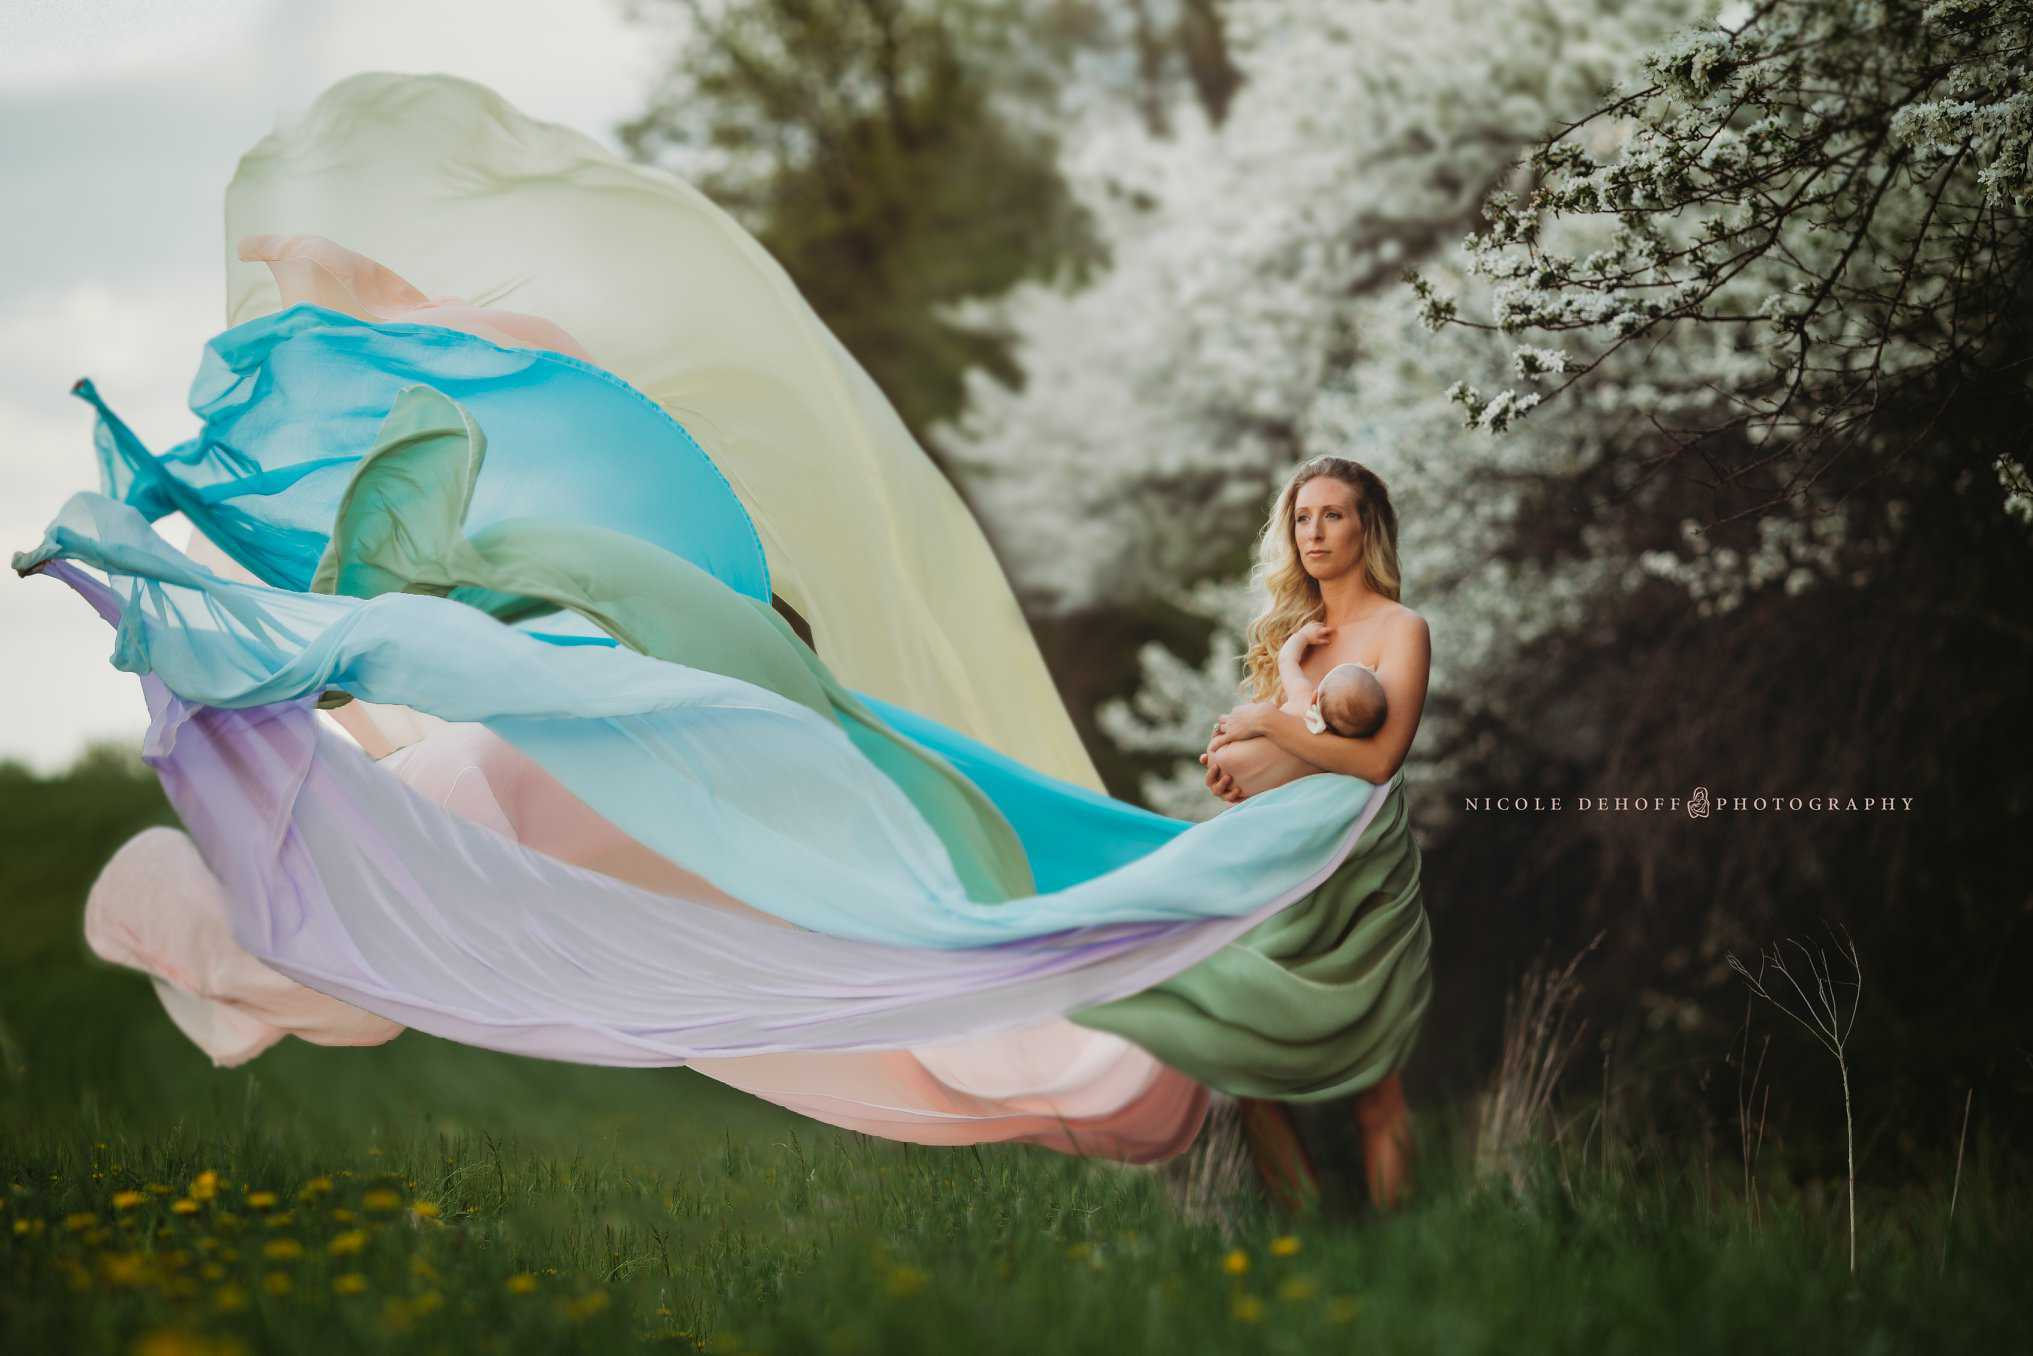 A woman breastfeeding her baby while her dress is flowing in the wind